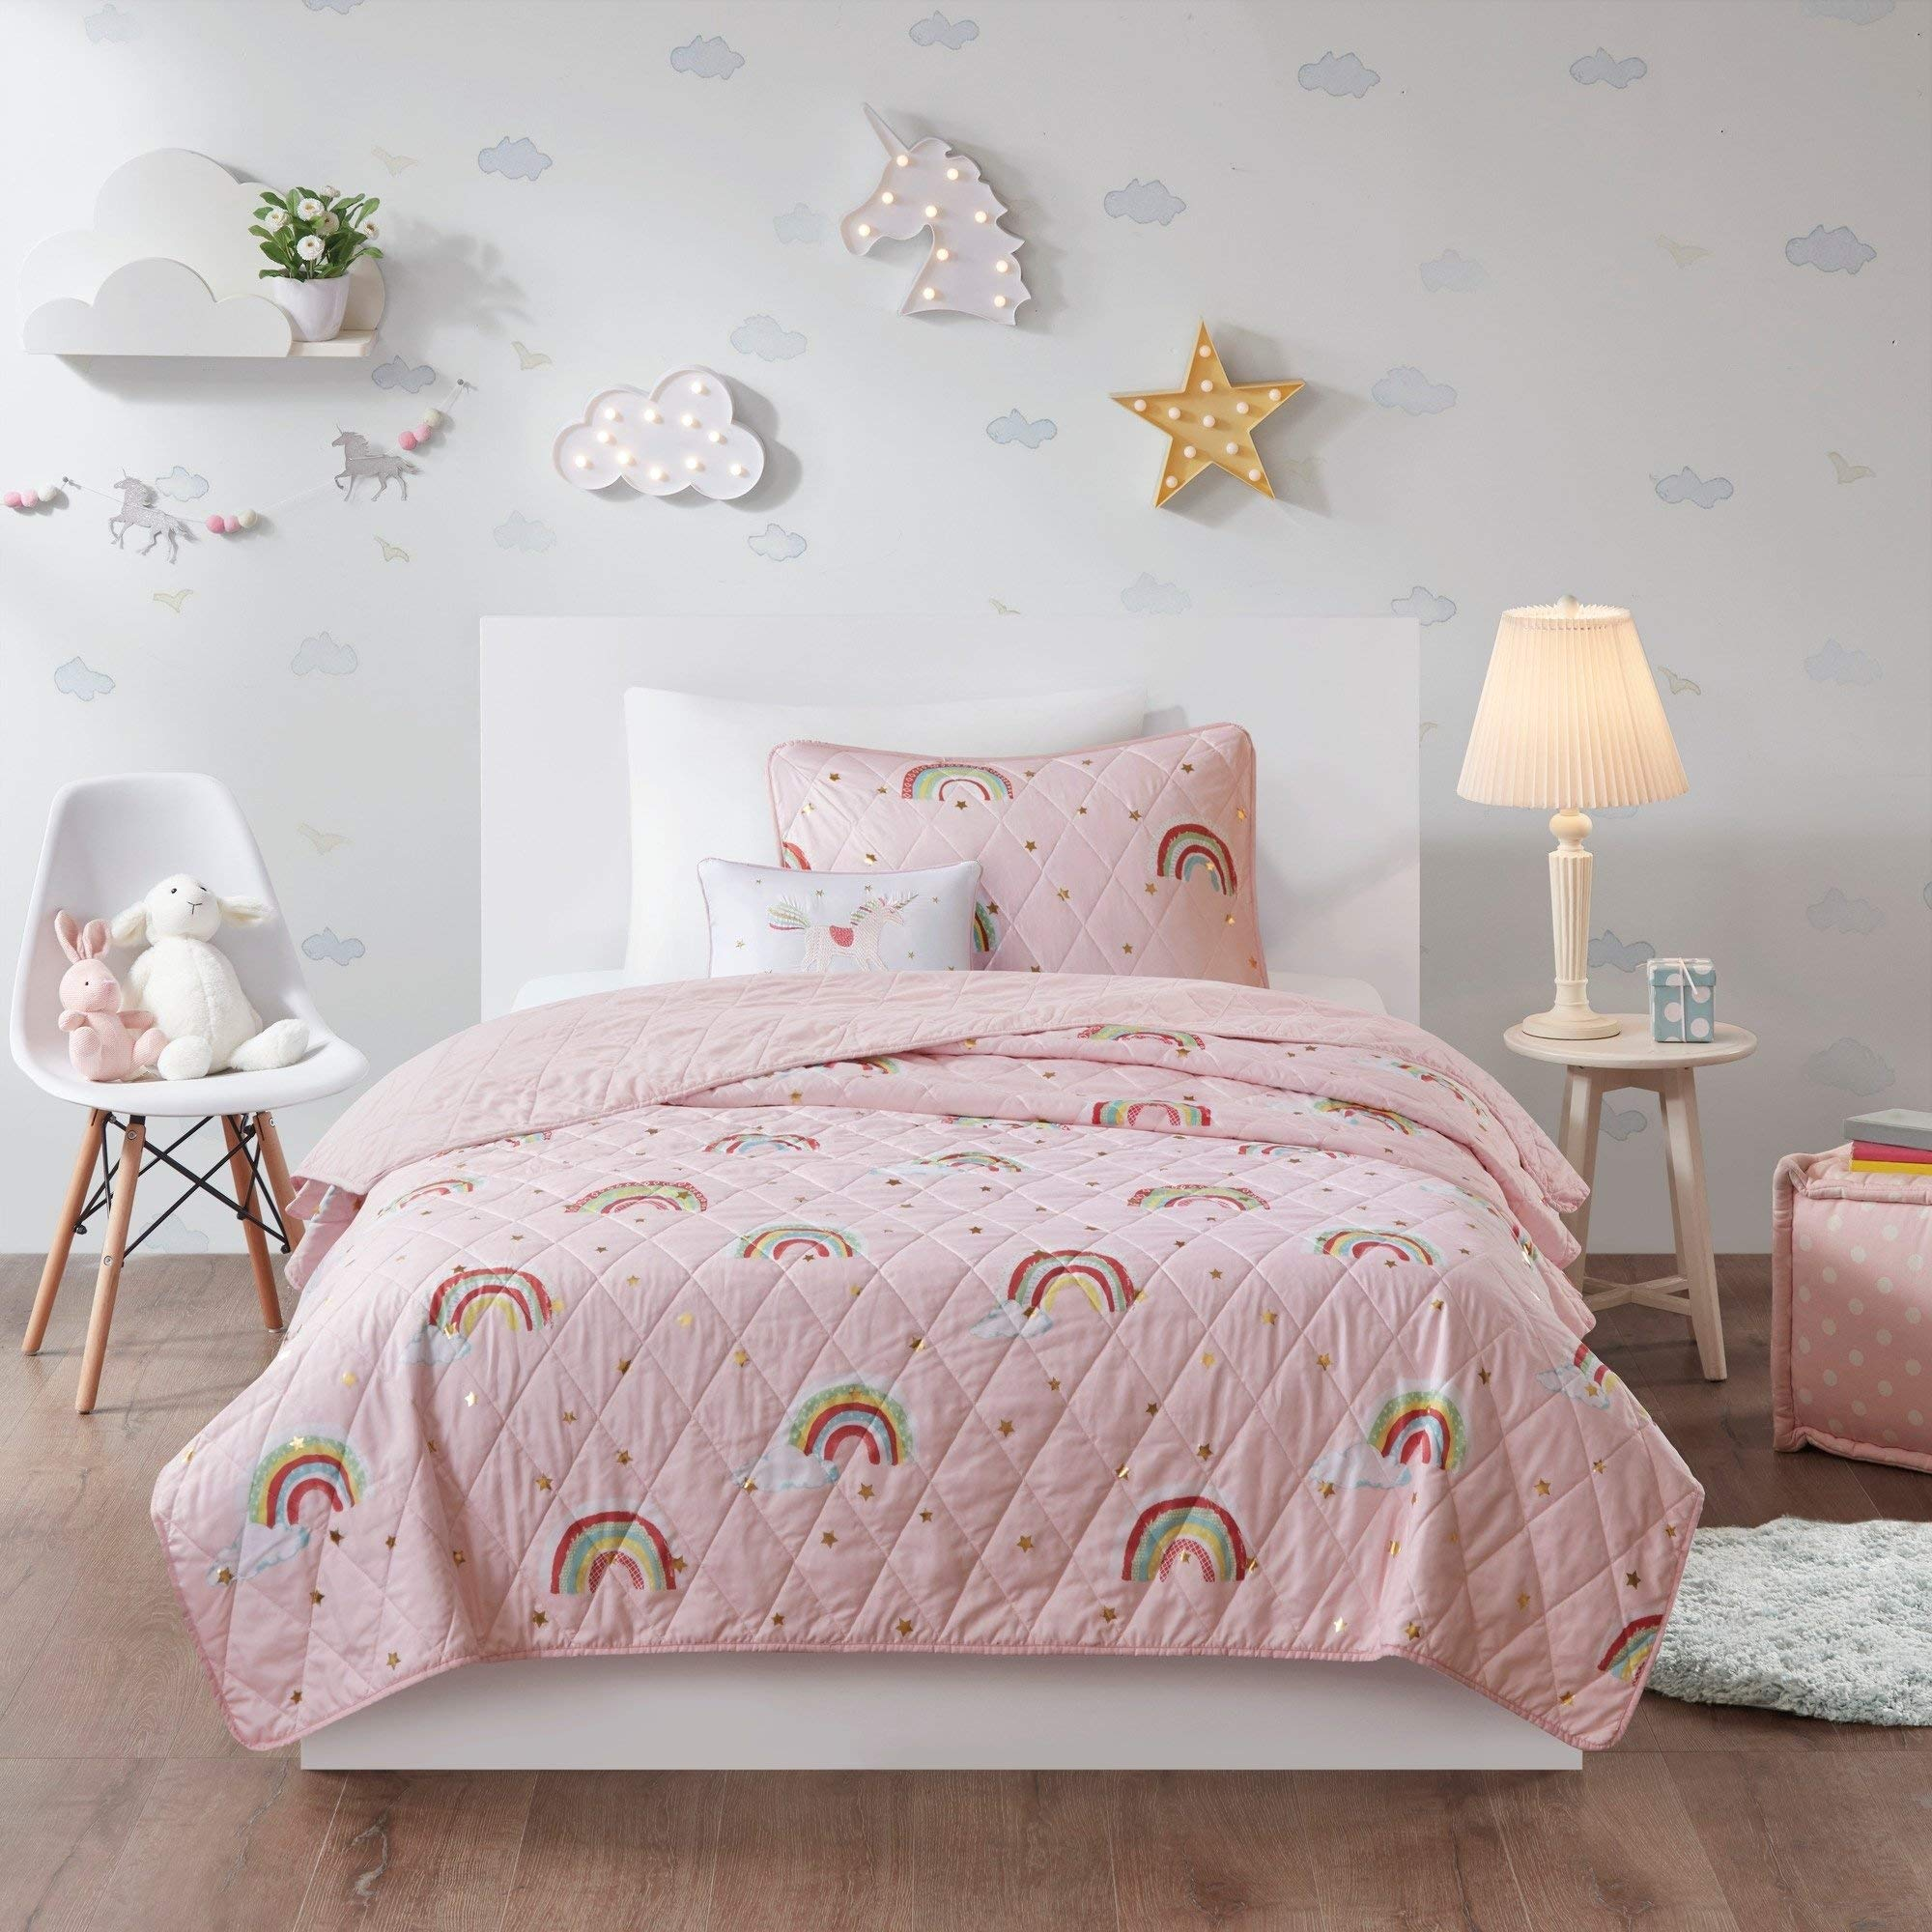 MISC Girls Pink Pastel Rainbow Bedding, Kids Metallic Gold Stars Colorful Rainbows Printed Reversible Coverlet, 4 Piece Full/Queen Size Set with Embroidered Decorative Unicorn Pillow by MISC